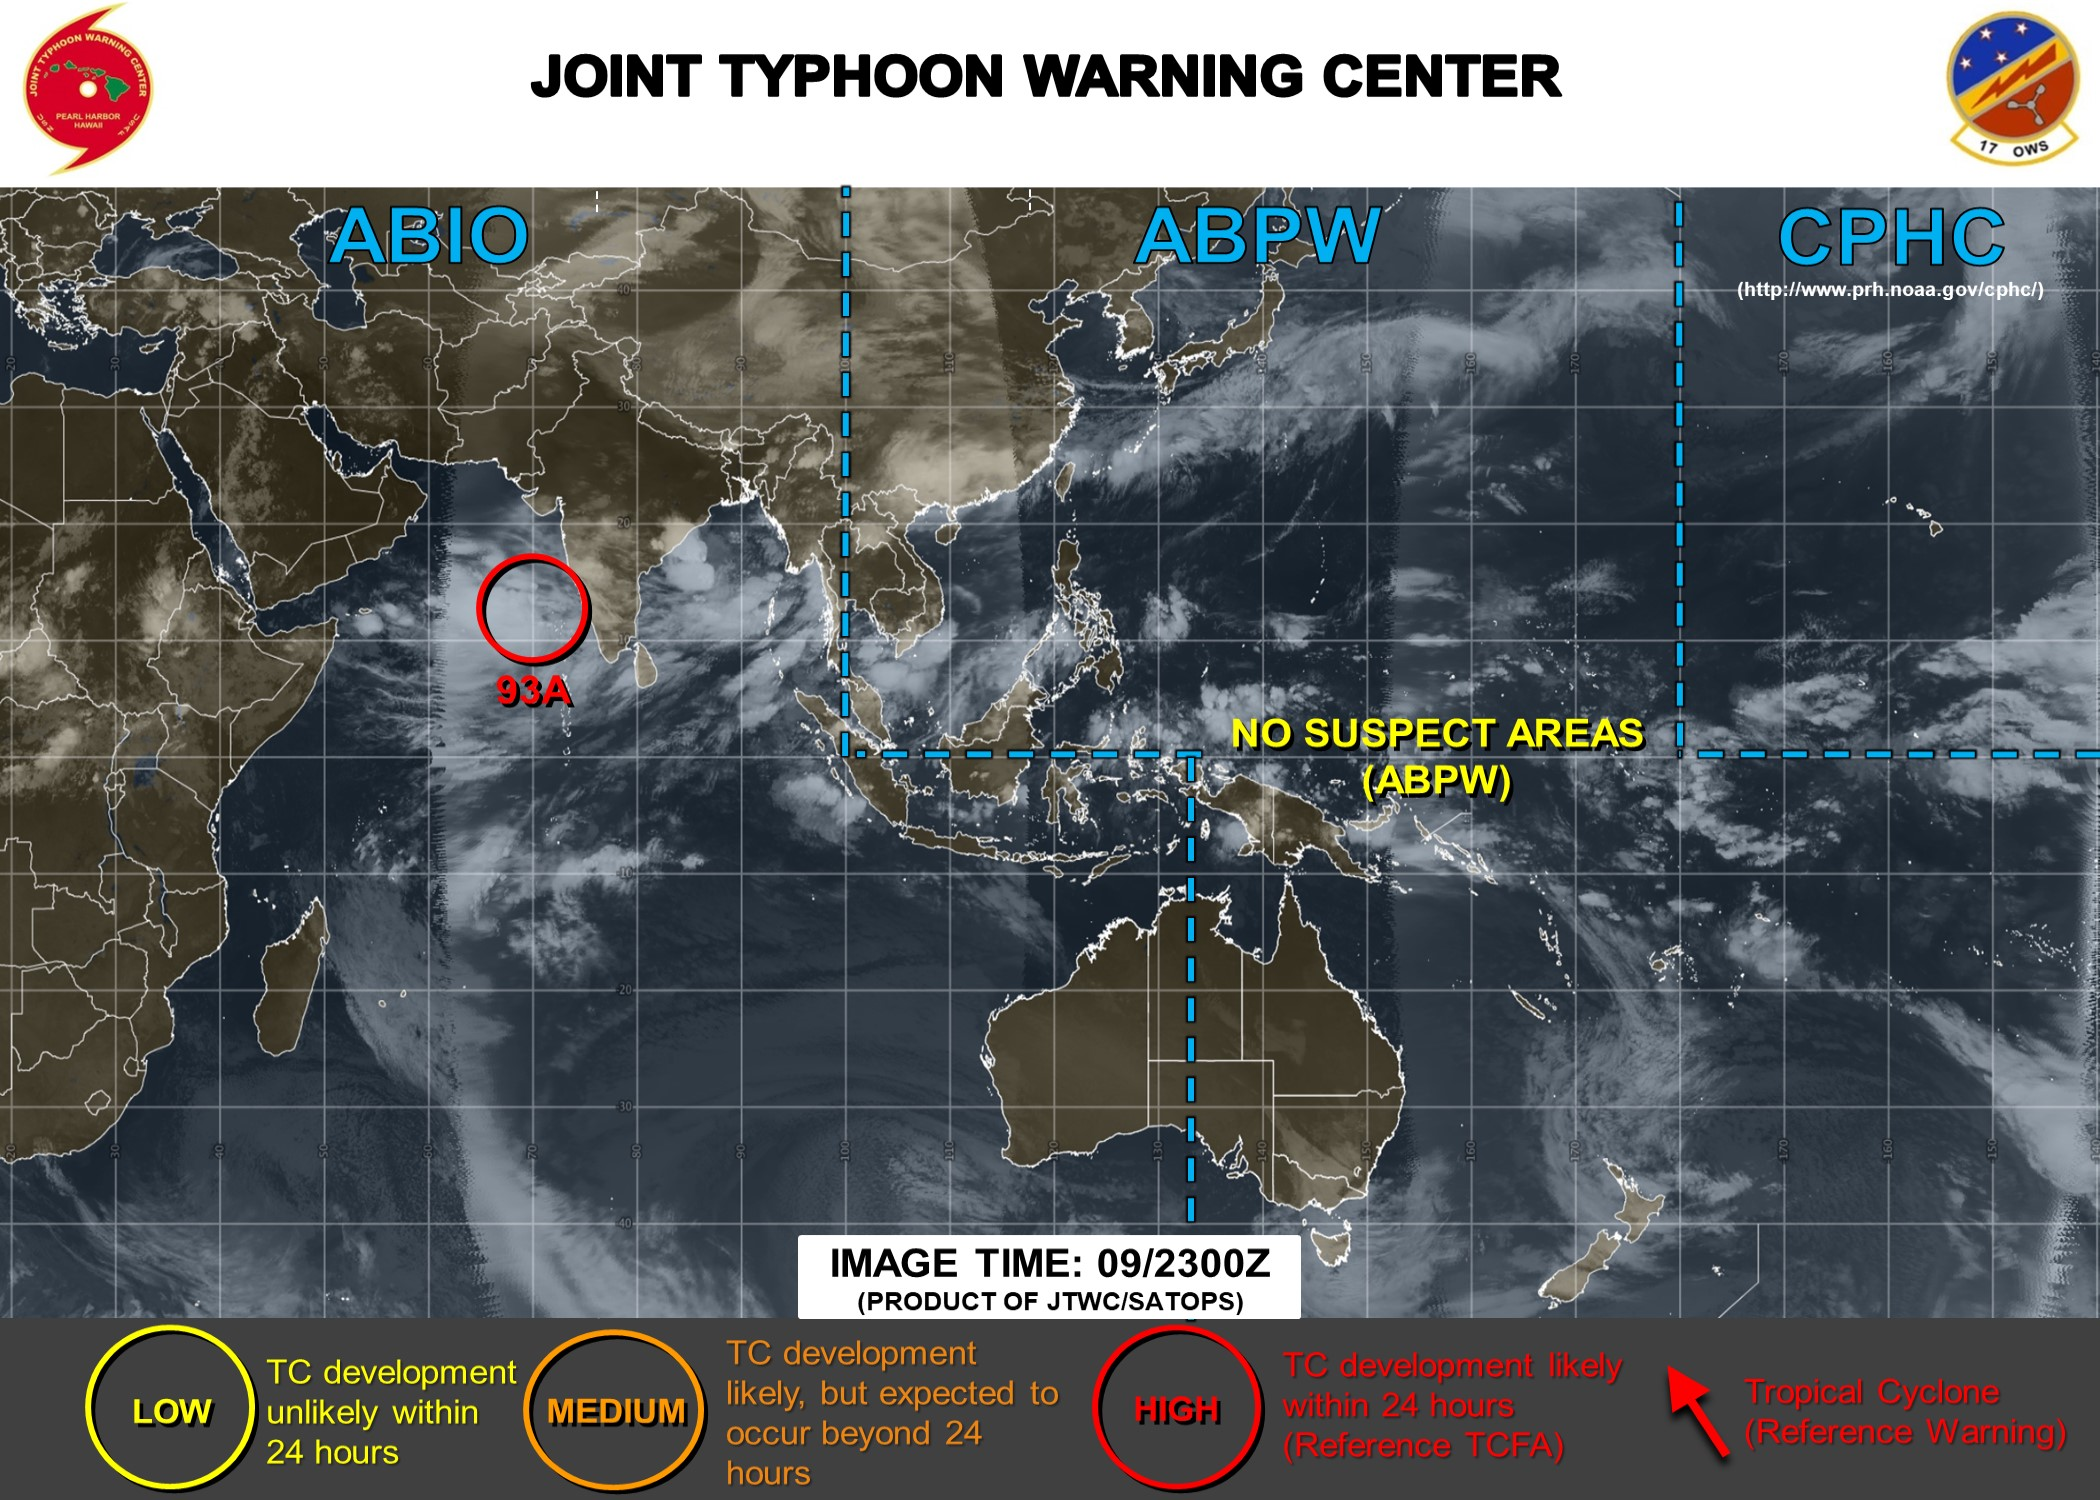 Tropical Cyclone Formation Alert(TCFA) issued by the JTWC